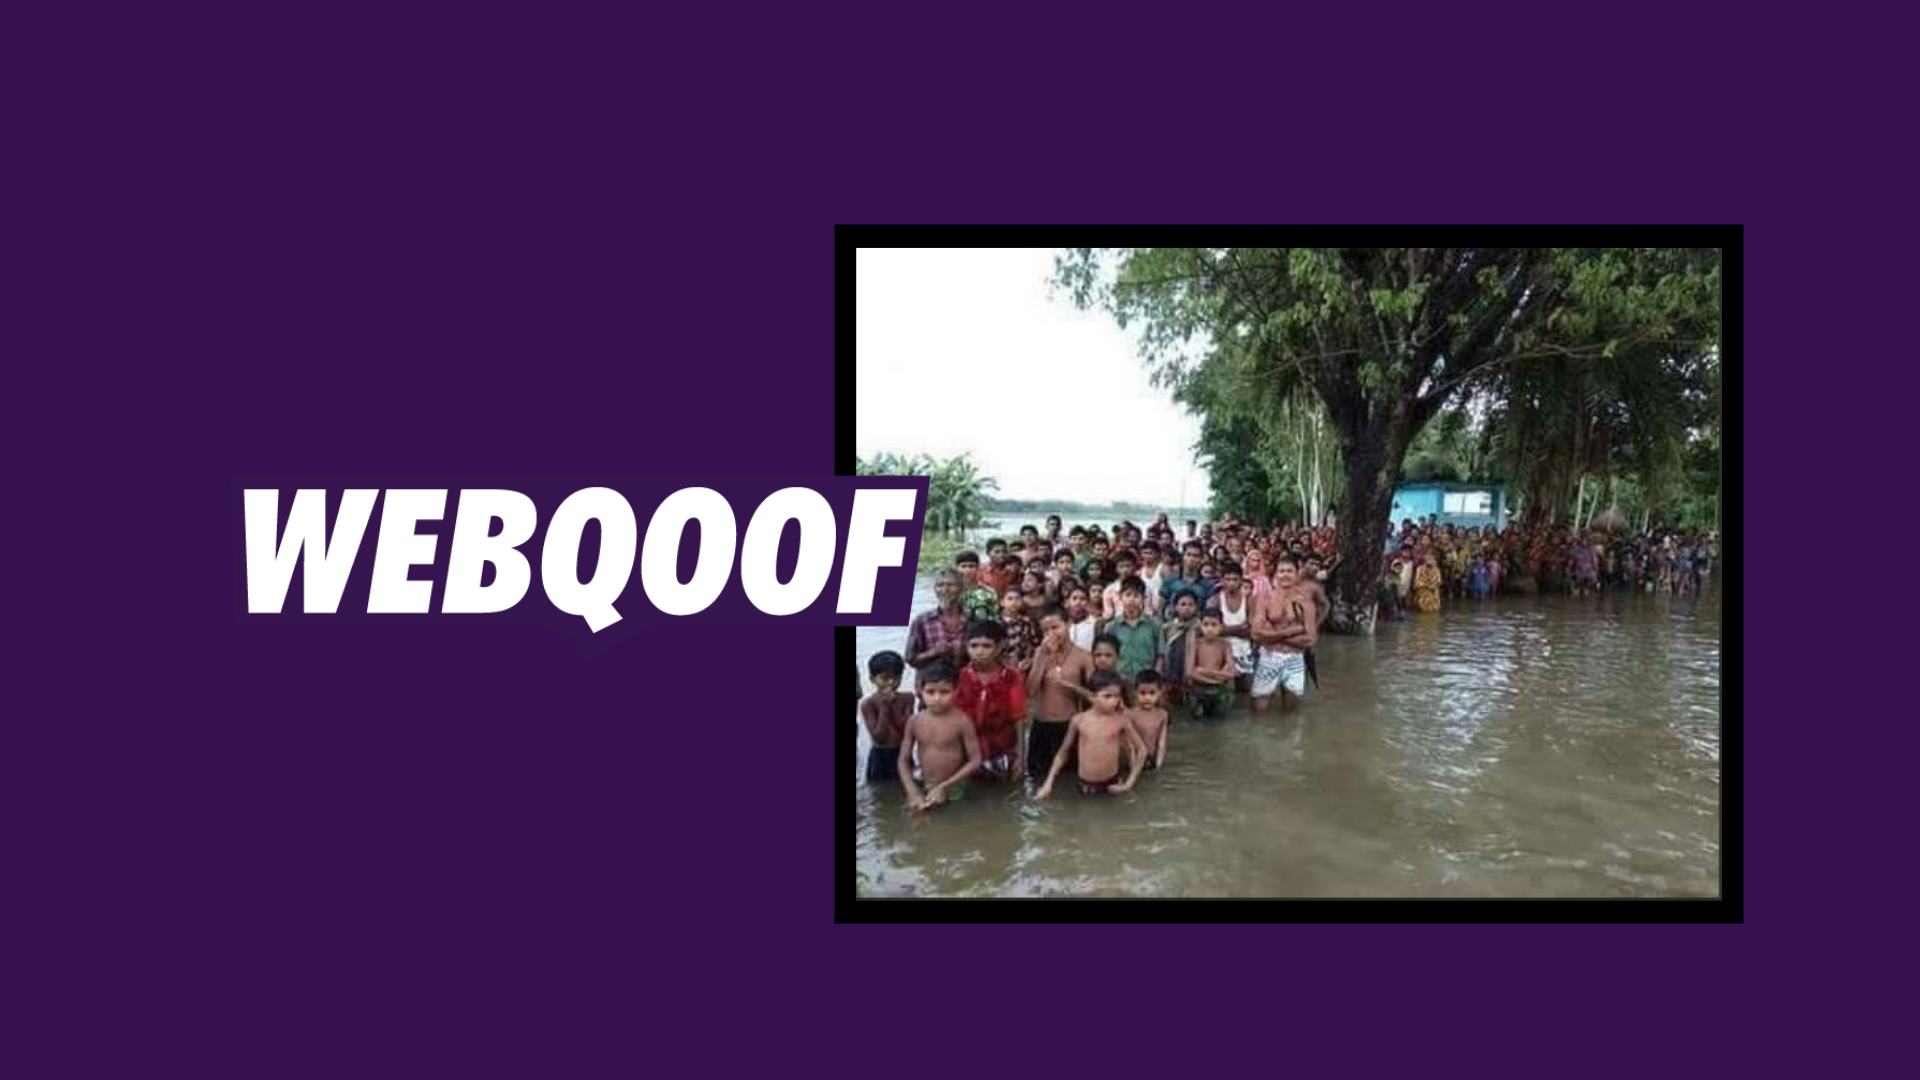 Are These Photos From the Current Assam Floods? Not Really